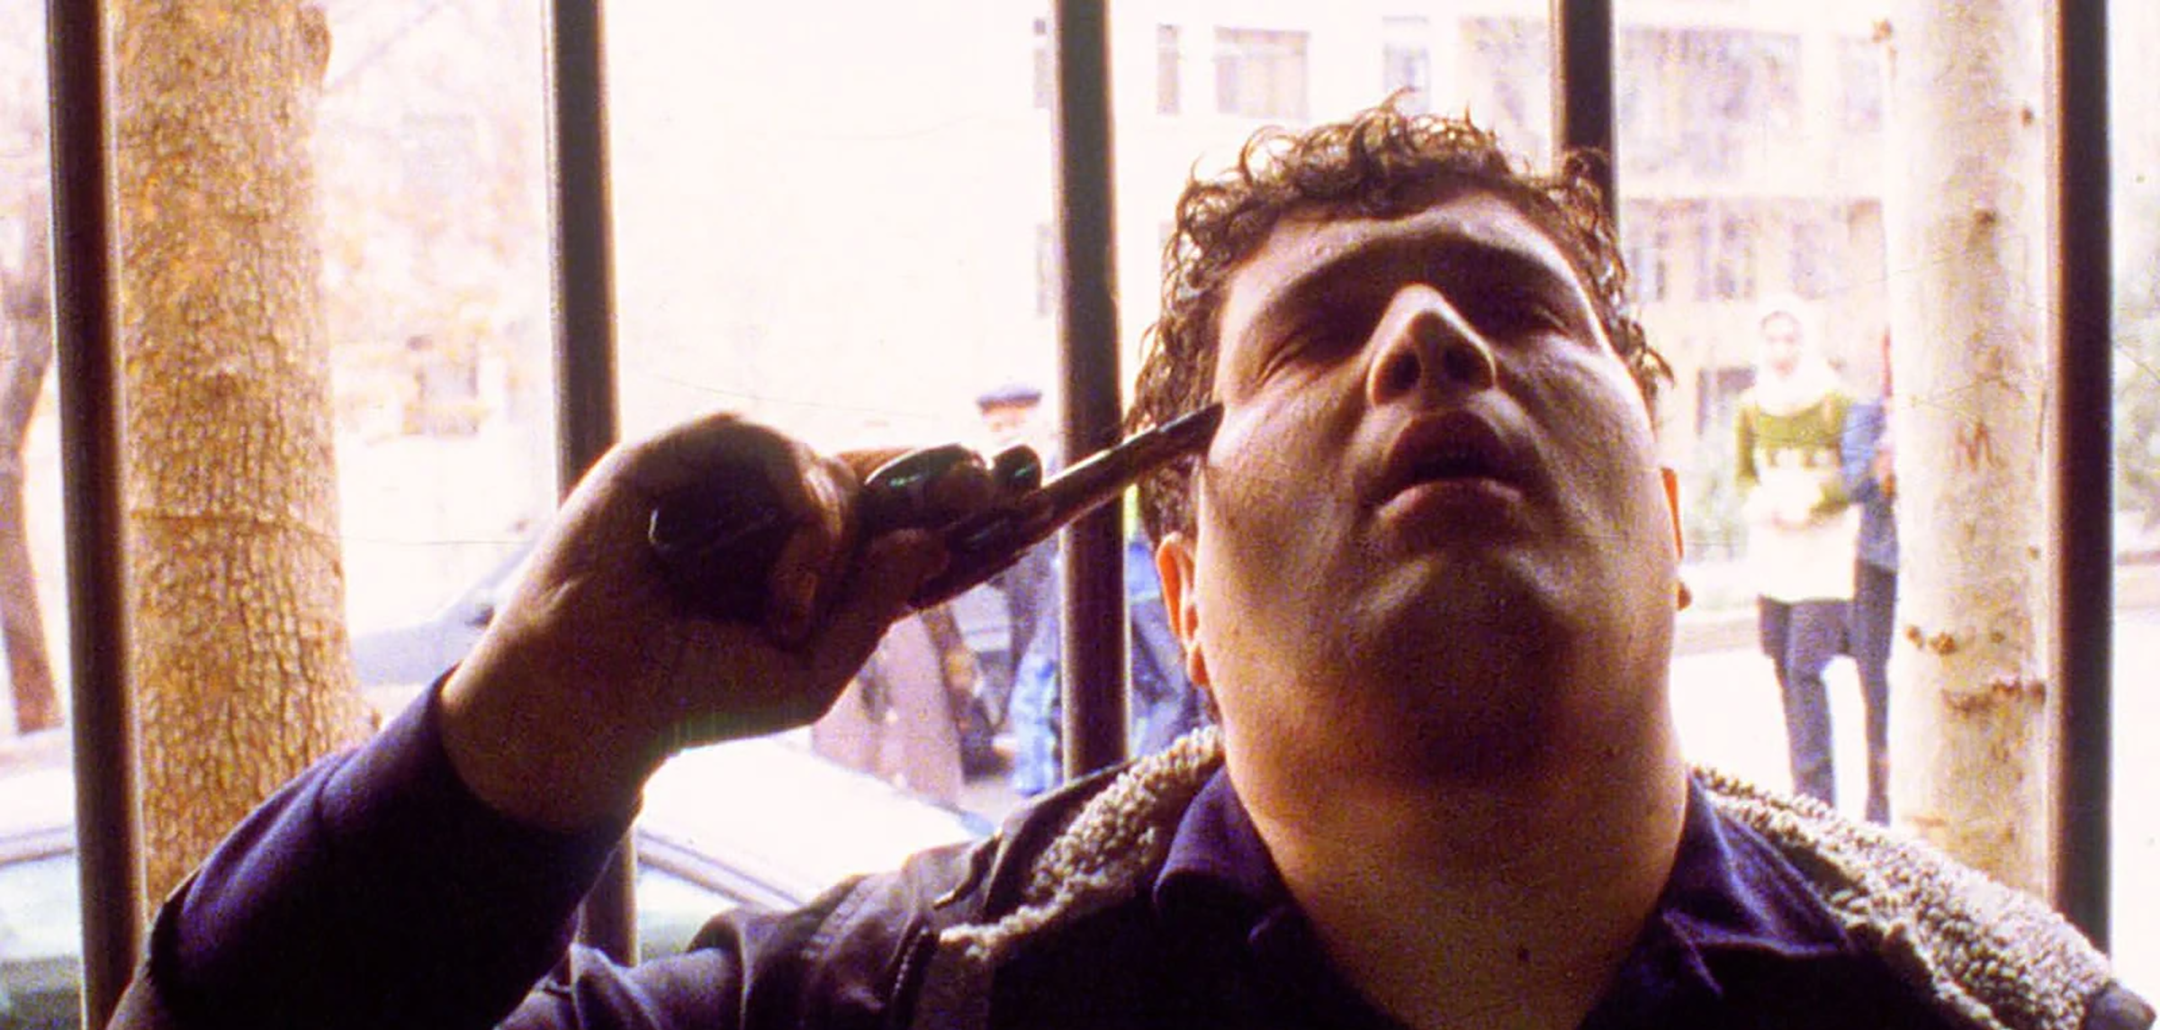 Hossain Emadeddin points a gun to his head in a still from 'Crimson Gold' (2003)